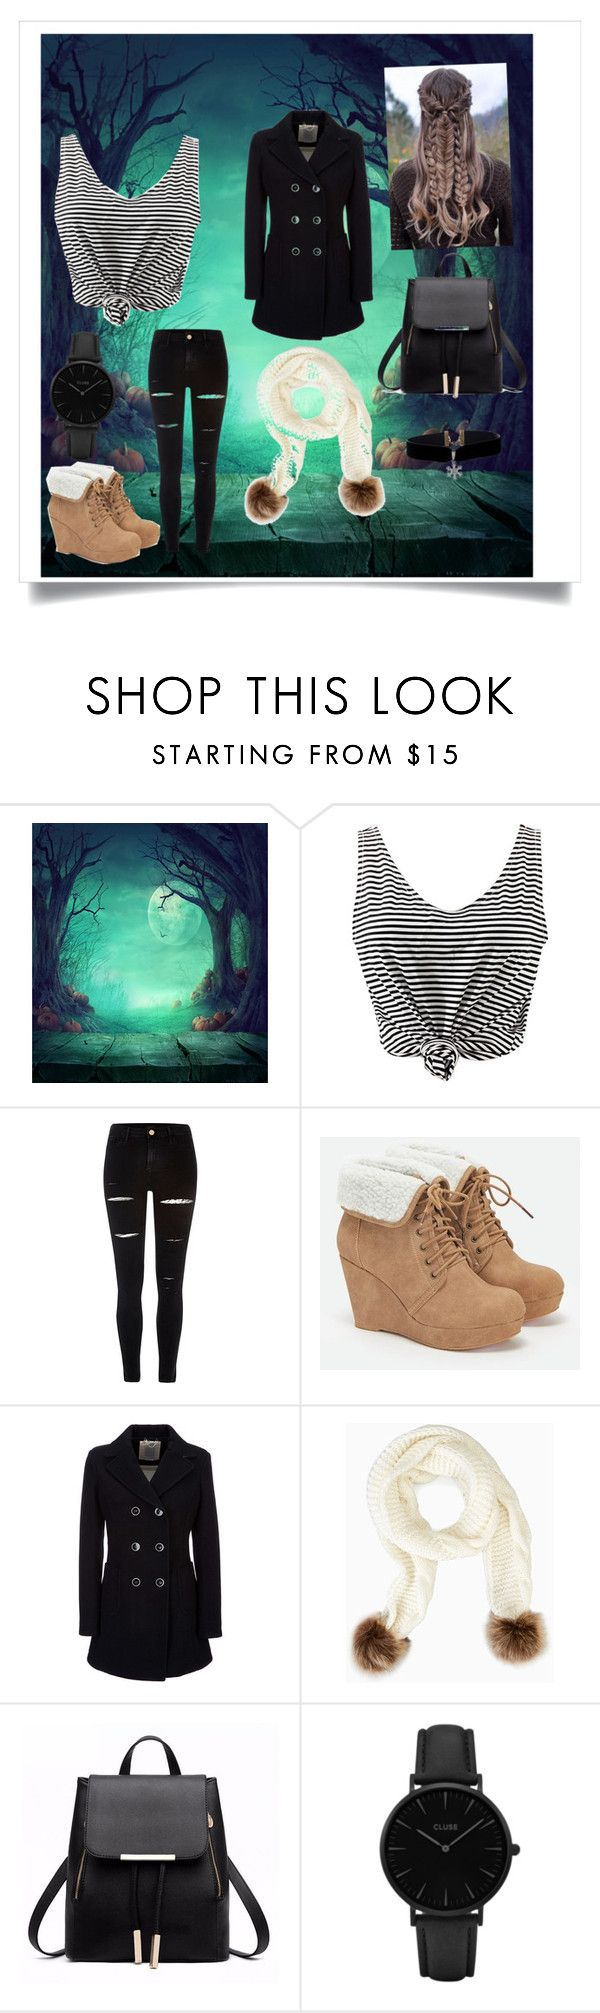 """Chilly Weather"" by alexis-kitten on Polyvore featuring WithChic, River Island, JustFab, Geox, Shibuya and CLUSE"